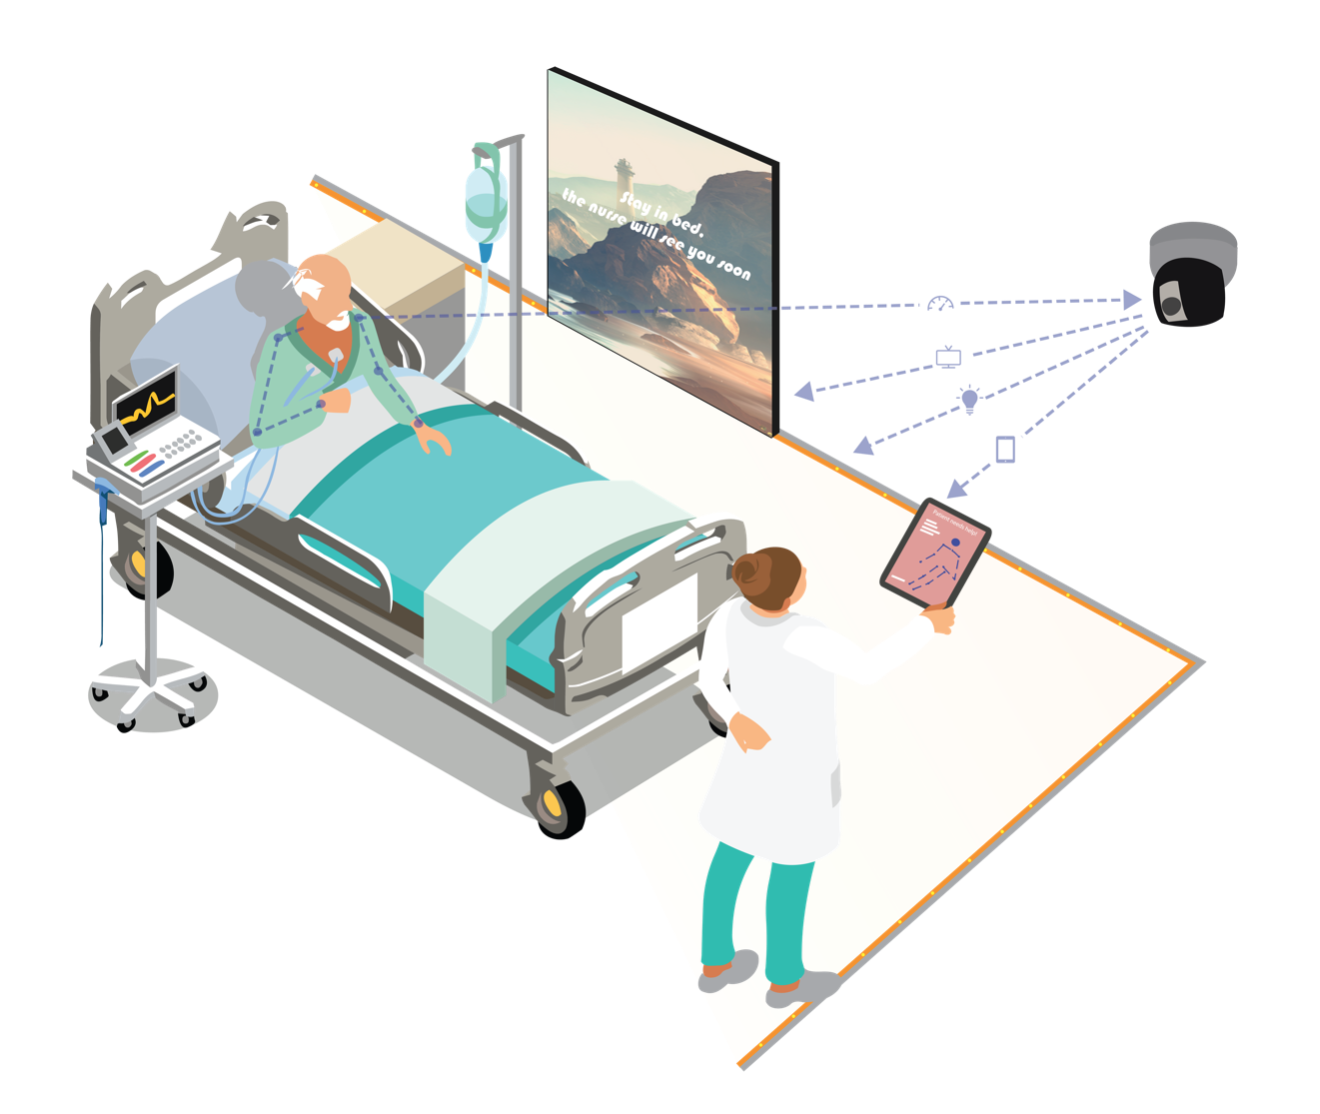 Patient lying in bed. An Ouva sensor in the top corner of the room analyzing patient posture and sending data to nurse device. A screen on the wall reads 'Stay in bed, the nurse will see you soon.' on top of a calming nature background.